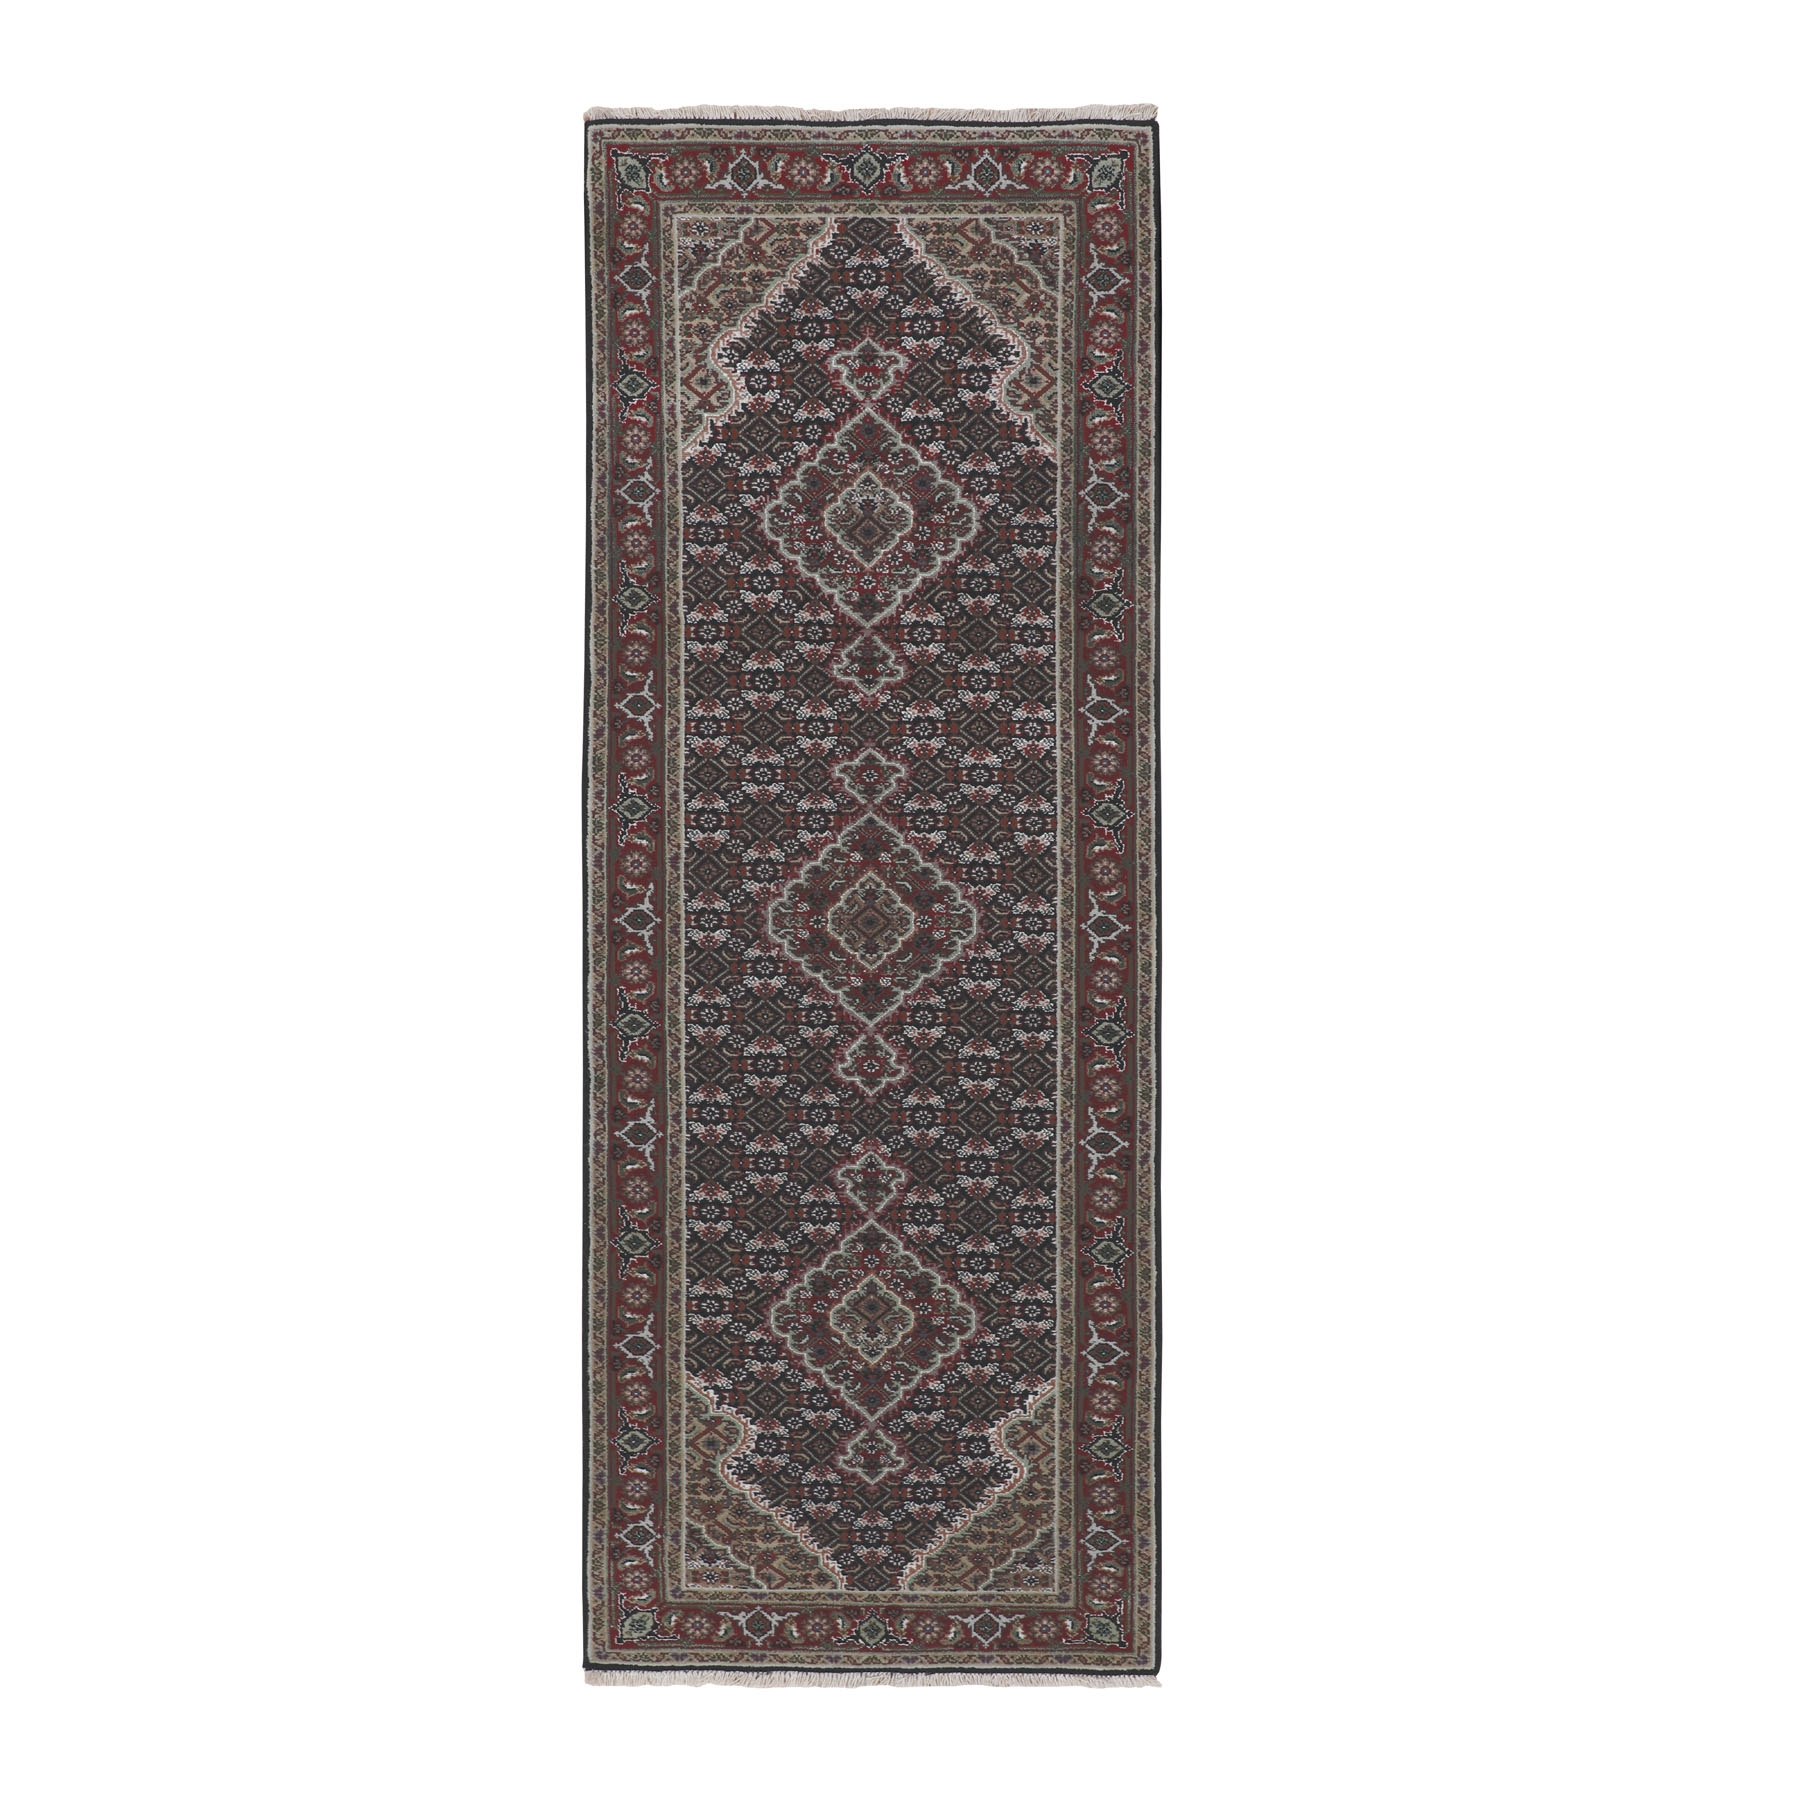 Pirniakan Collection Hand Knotted Black Rug No: 01116652